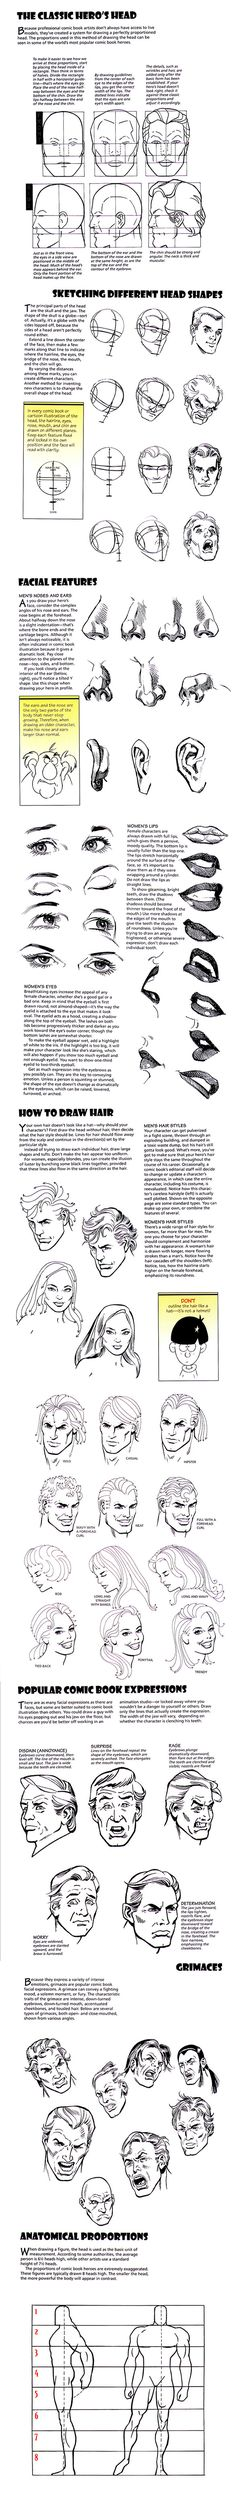 How to draw comics people 36 Trendy ideas Drawing Techniques, Drawing Tips, Comic Books Art, Comic Art, Character Design Tips, Drawing Superheroes, Comic Drawing, Anatomy Reference, Pose Reference